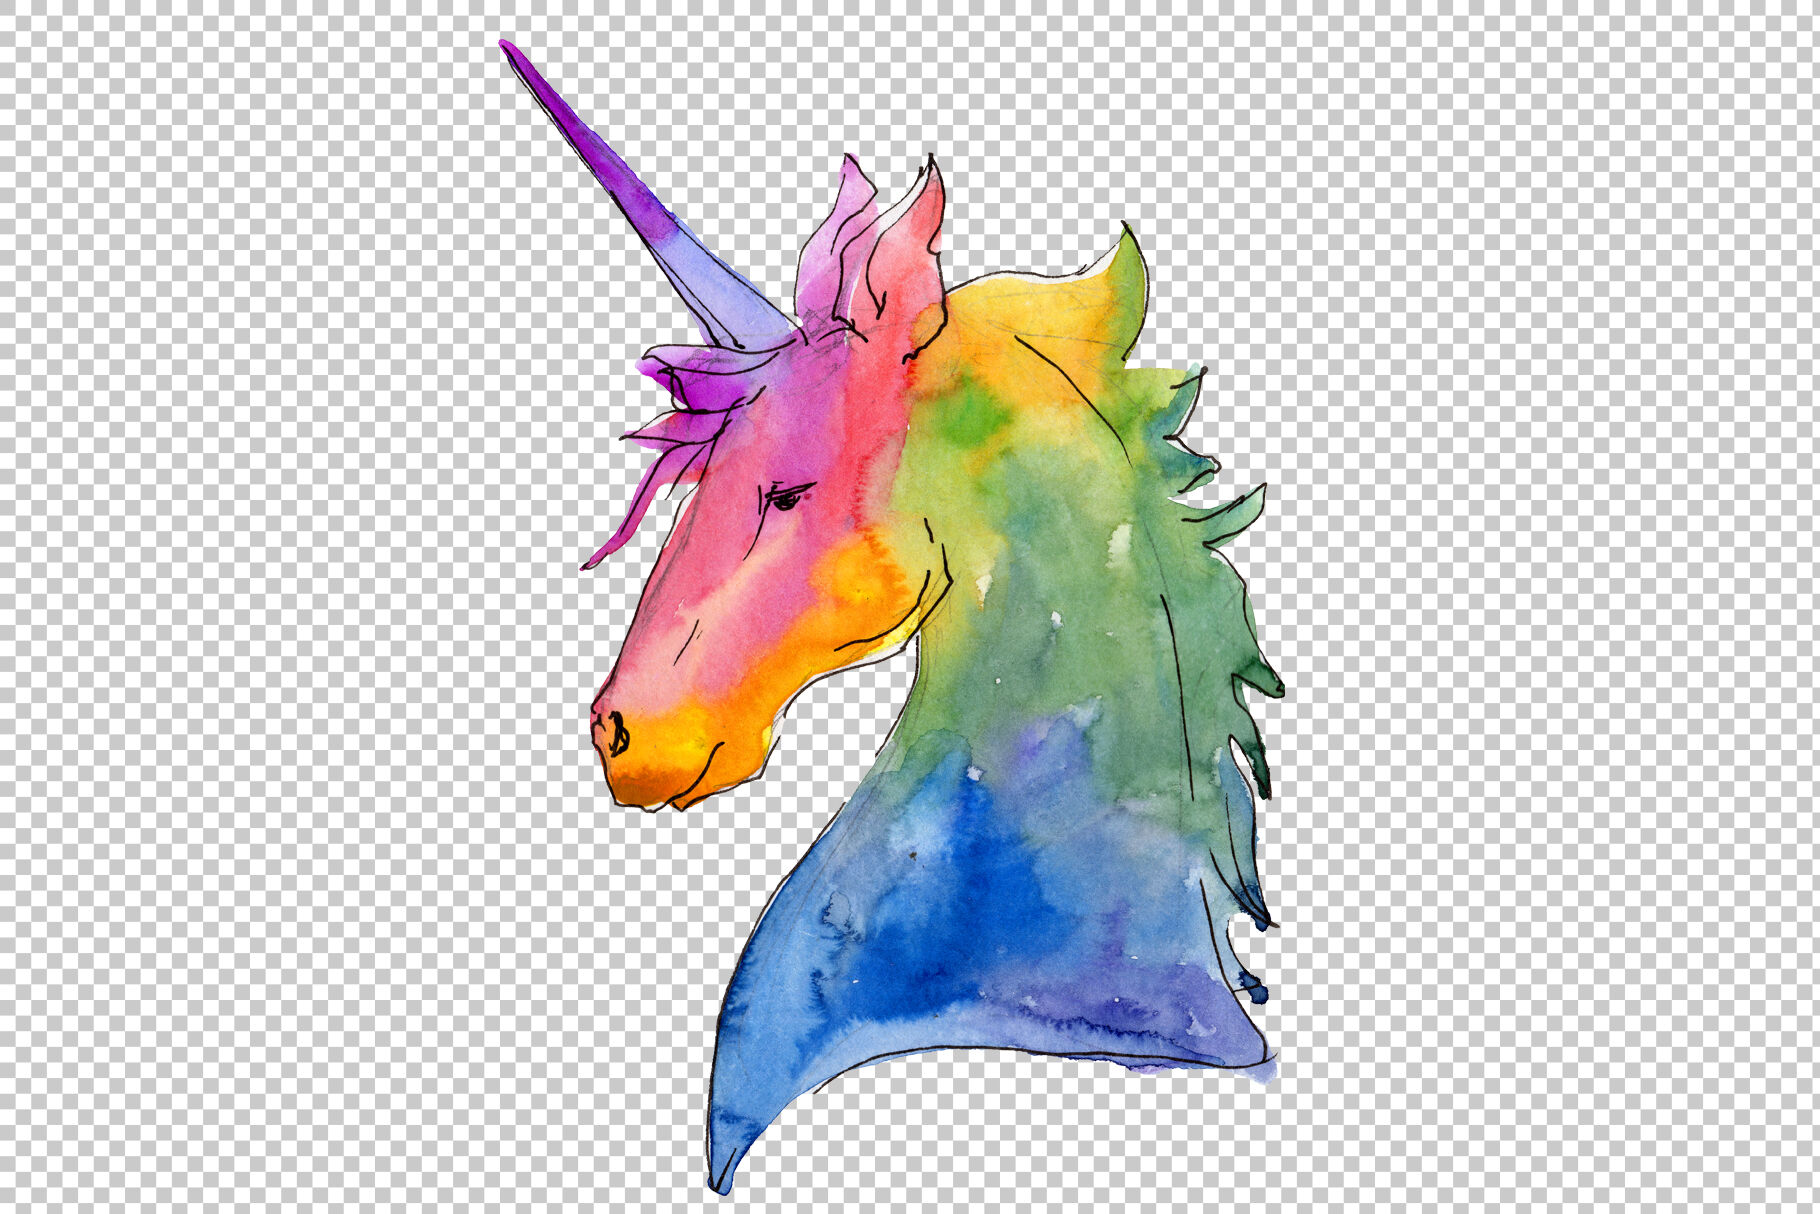 Watercolor Unicorn Clipart Free Commercial Use Hand Painted Digital By Watercolordeal Thehungryjpeg Com